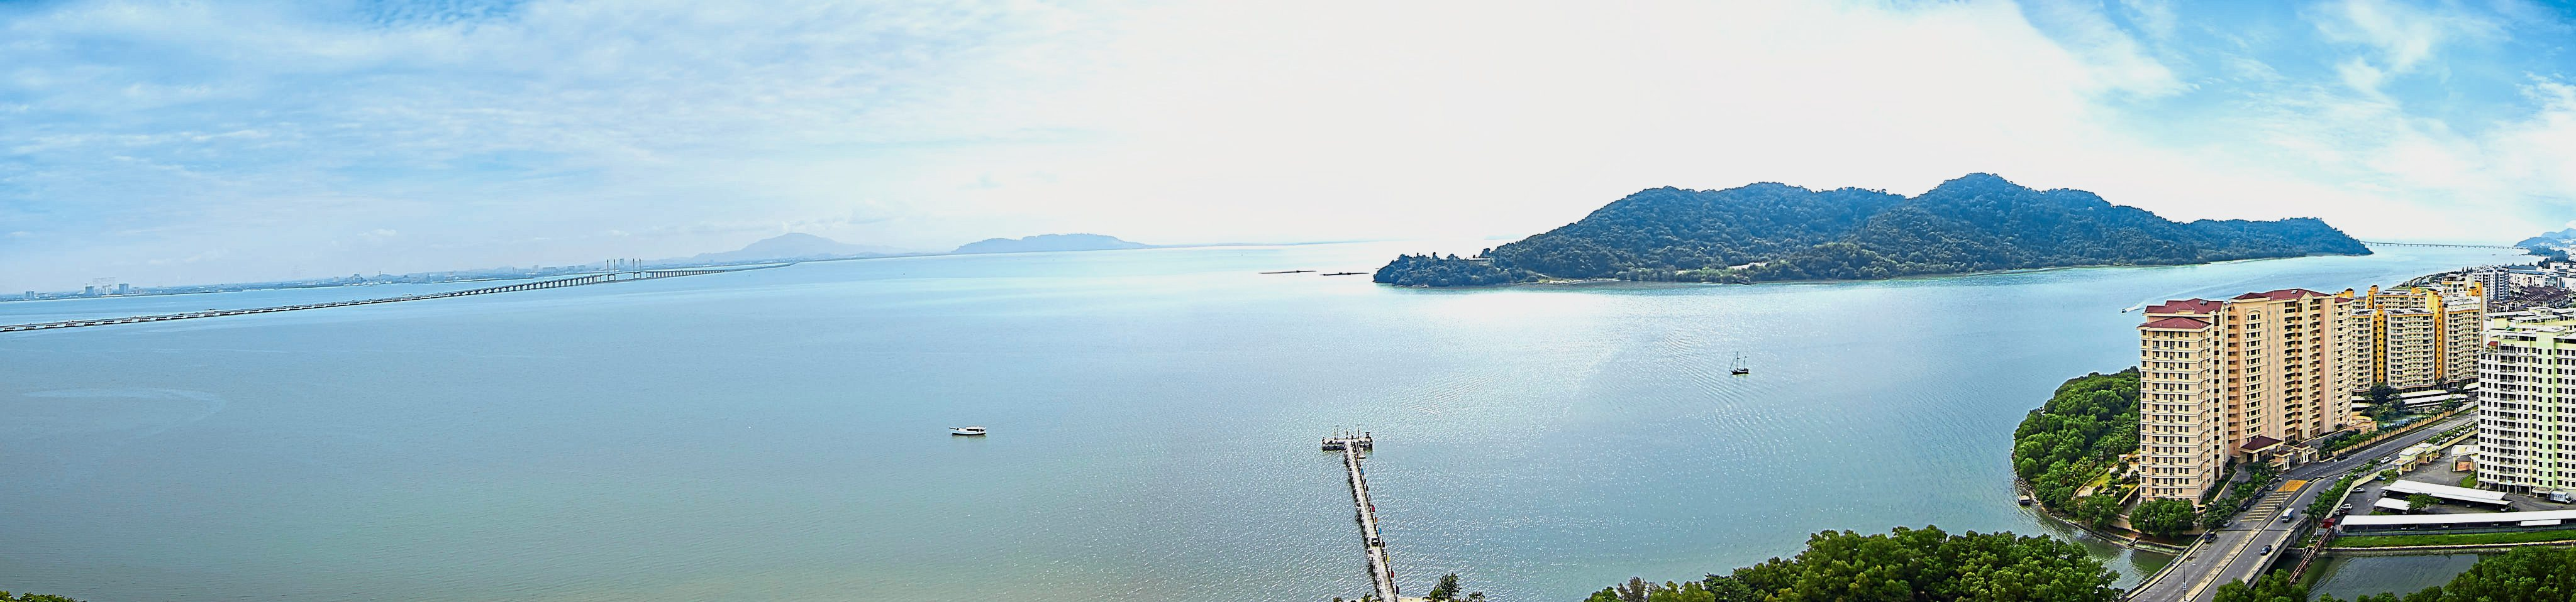 The gorgeous view of the Penang channel, Penang Bridge and Pulau Jerejak that future inhabitants of QuayWest Residence will get to enjoy.